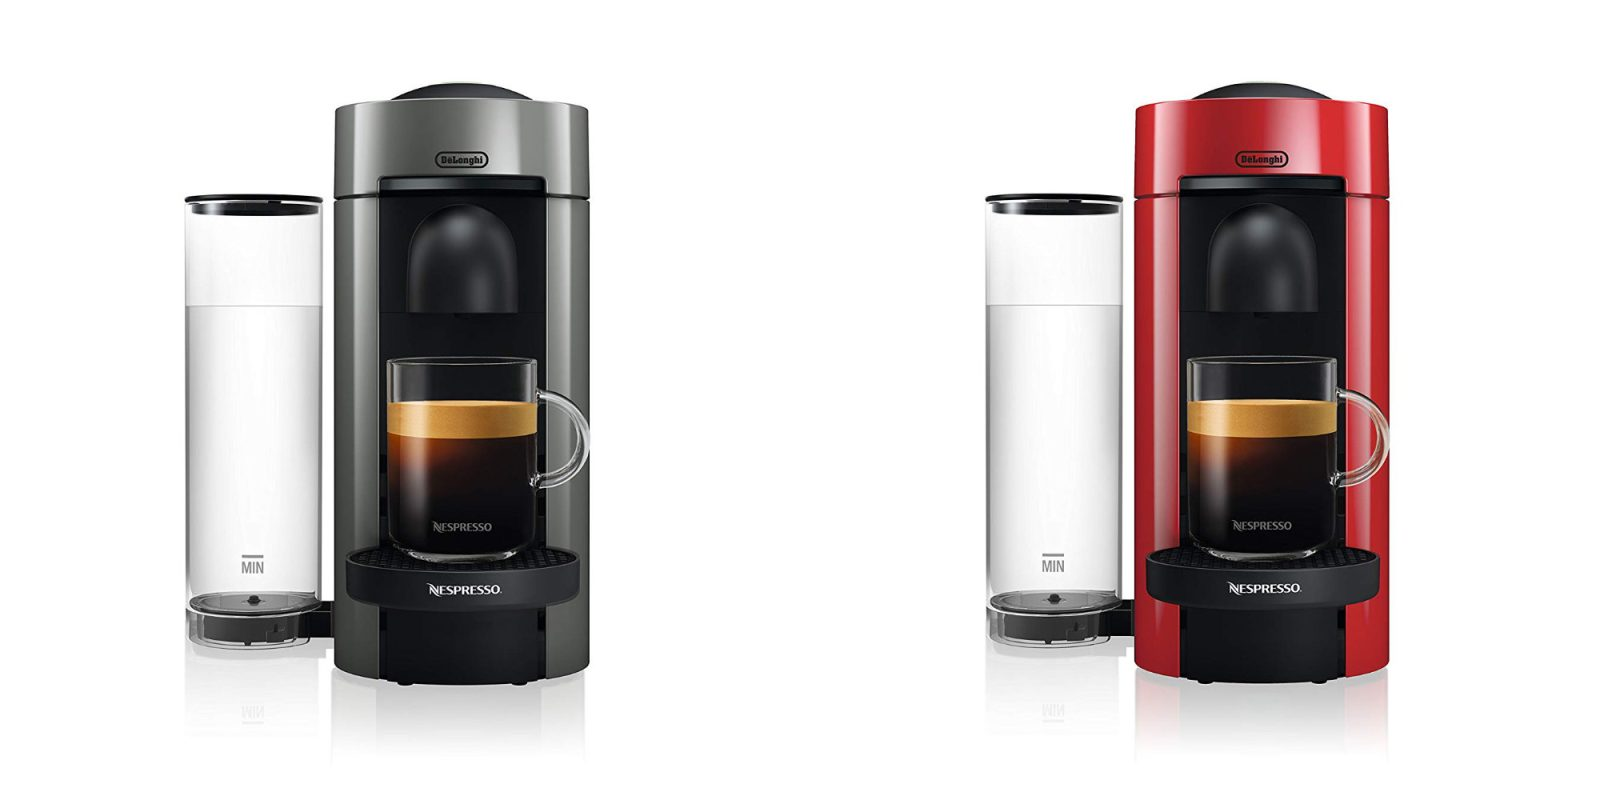 Amazon's Gold Box brings De'Longhi's Nespresso VertuoPlus Coffee Maker down to $75 (Reg. $140)